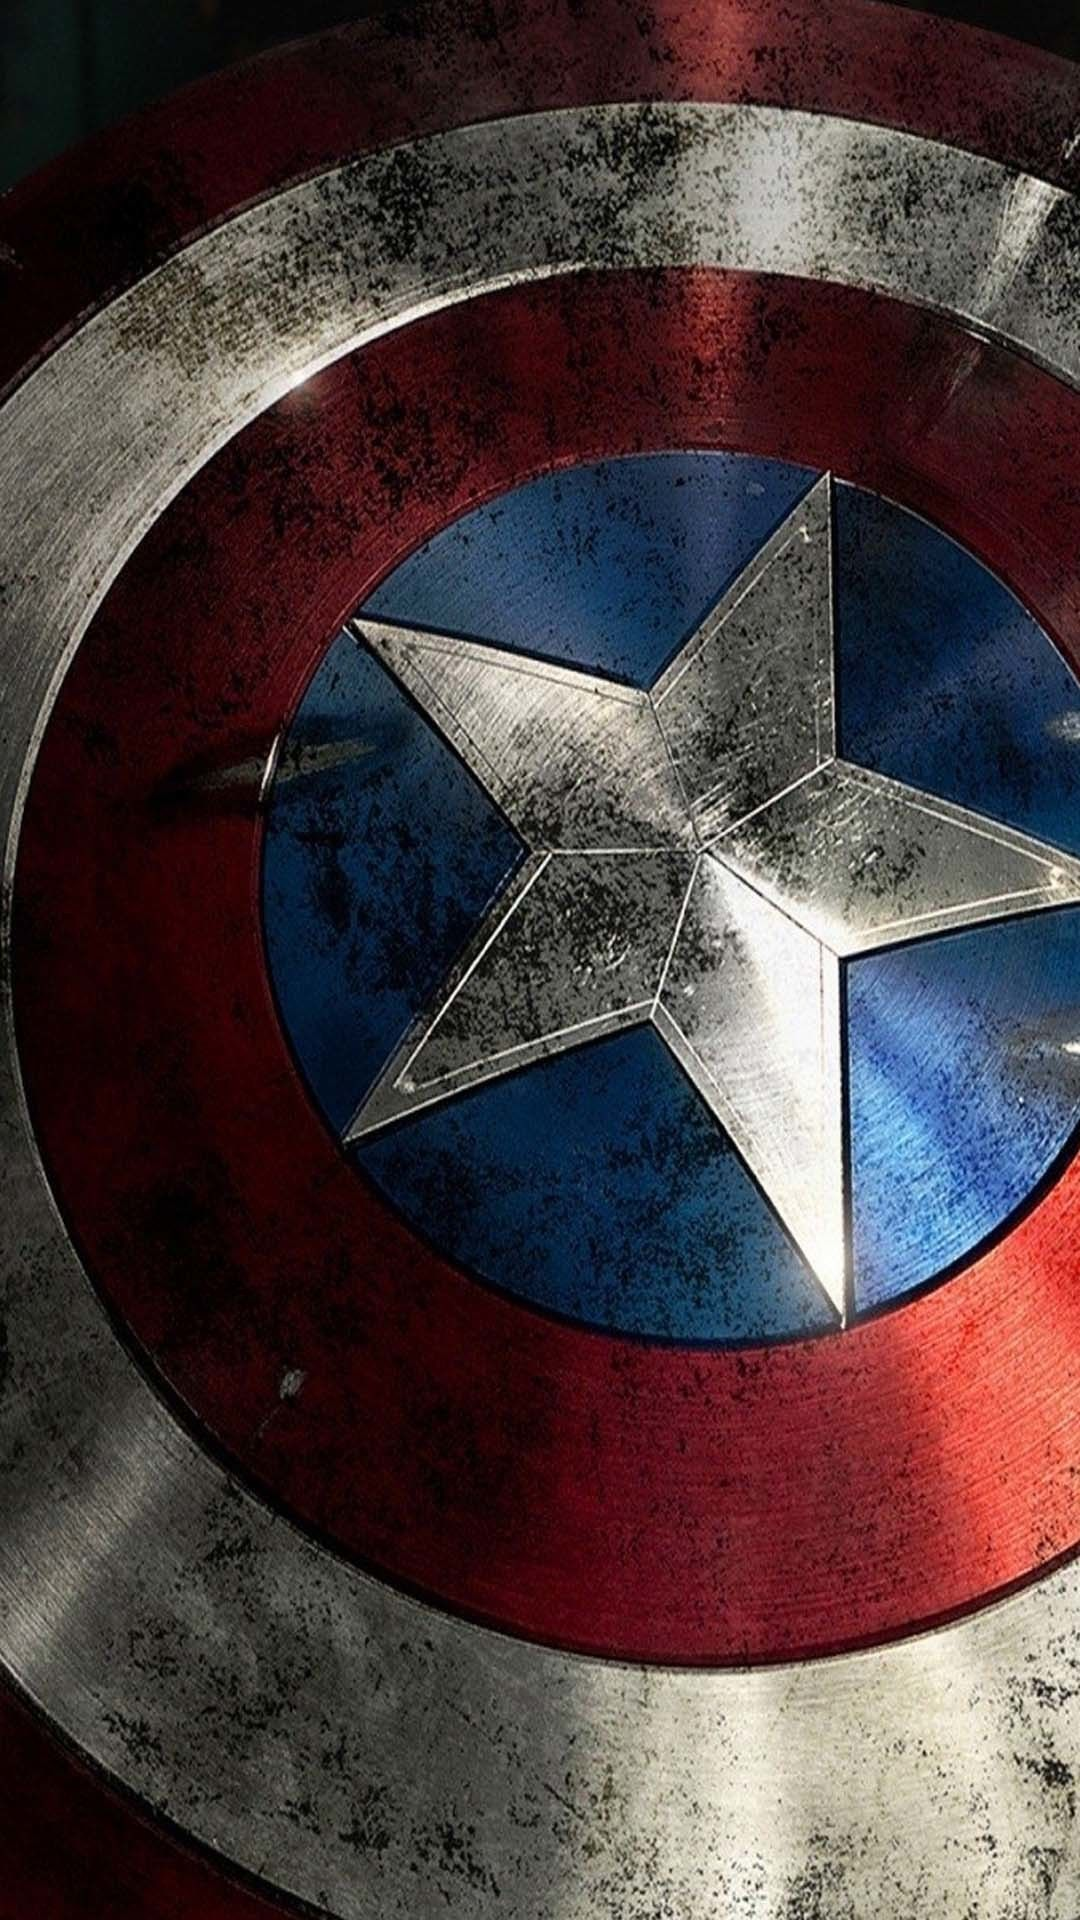 Visit Captain America Wallpaper Home Screen On High Definition Wallpaper At Rainb In 2020 Captain America Wallpaper Captain America Shield Wallpaper Avengers Wallpaper